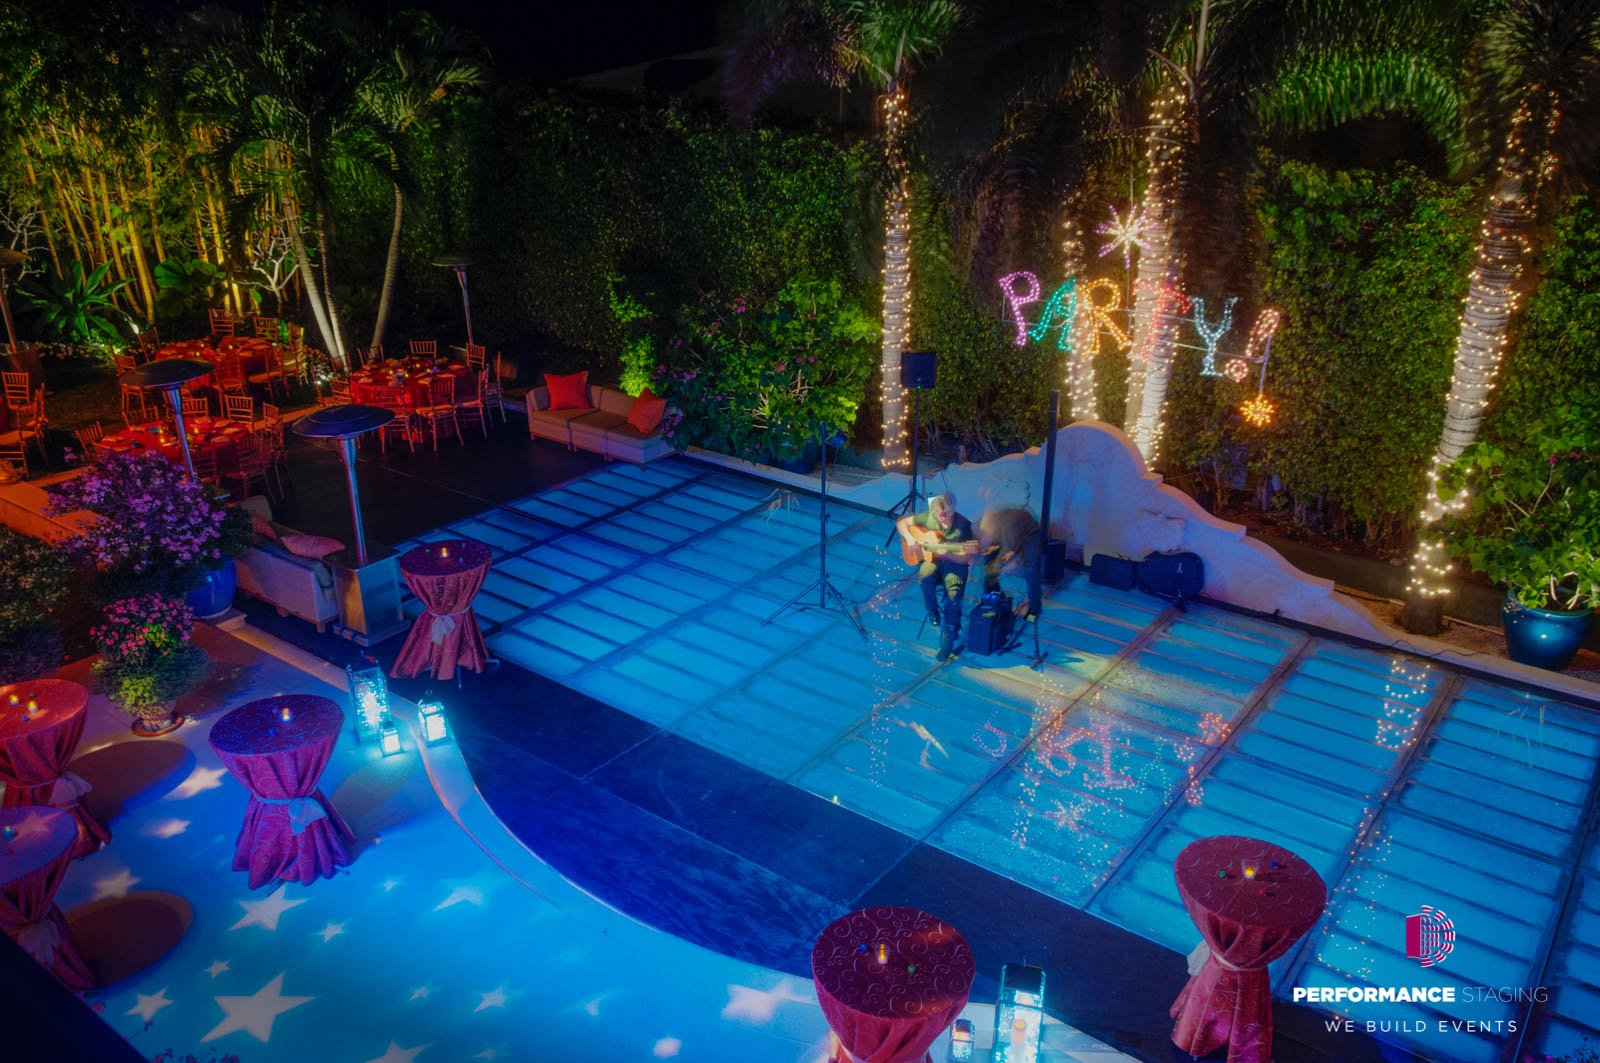 Dive Into Summer With A Pool Cover Rental From Waltz On Water